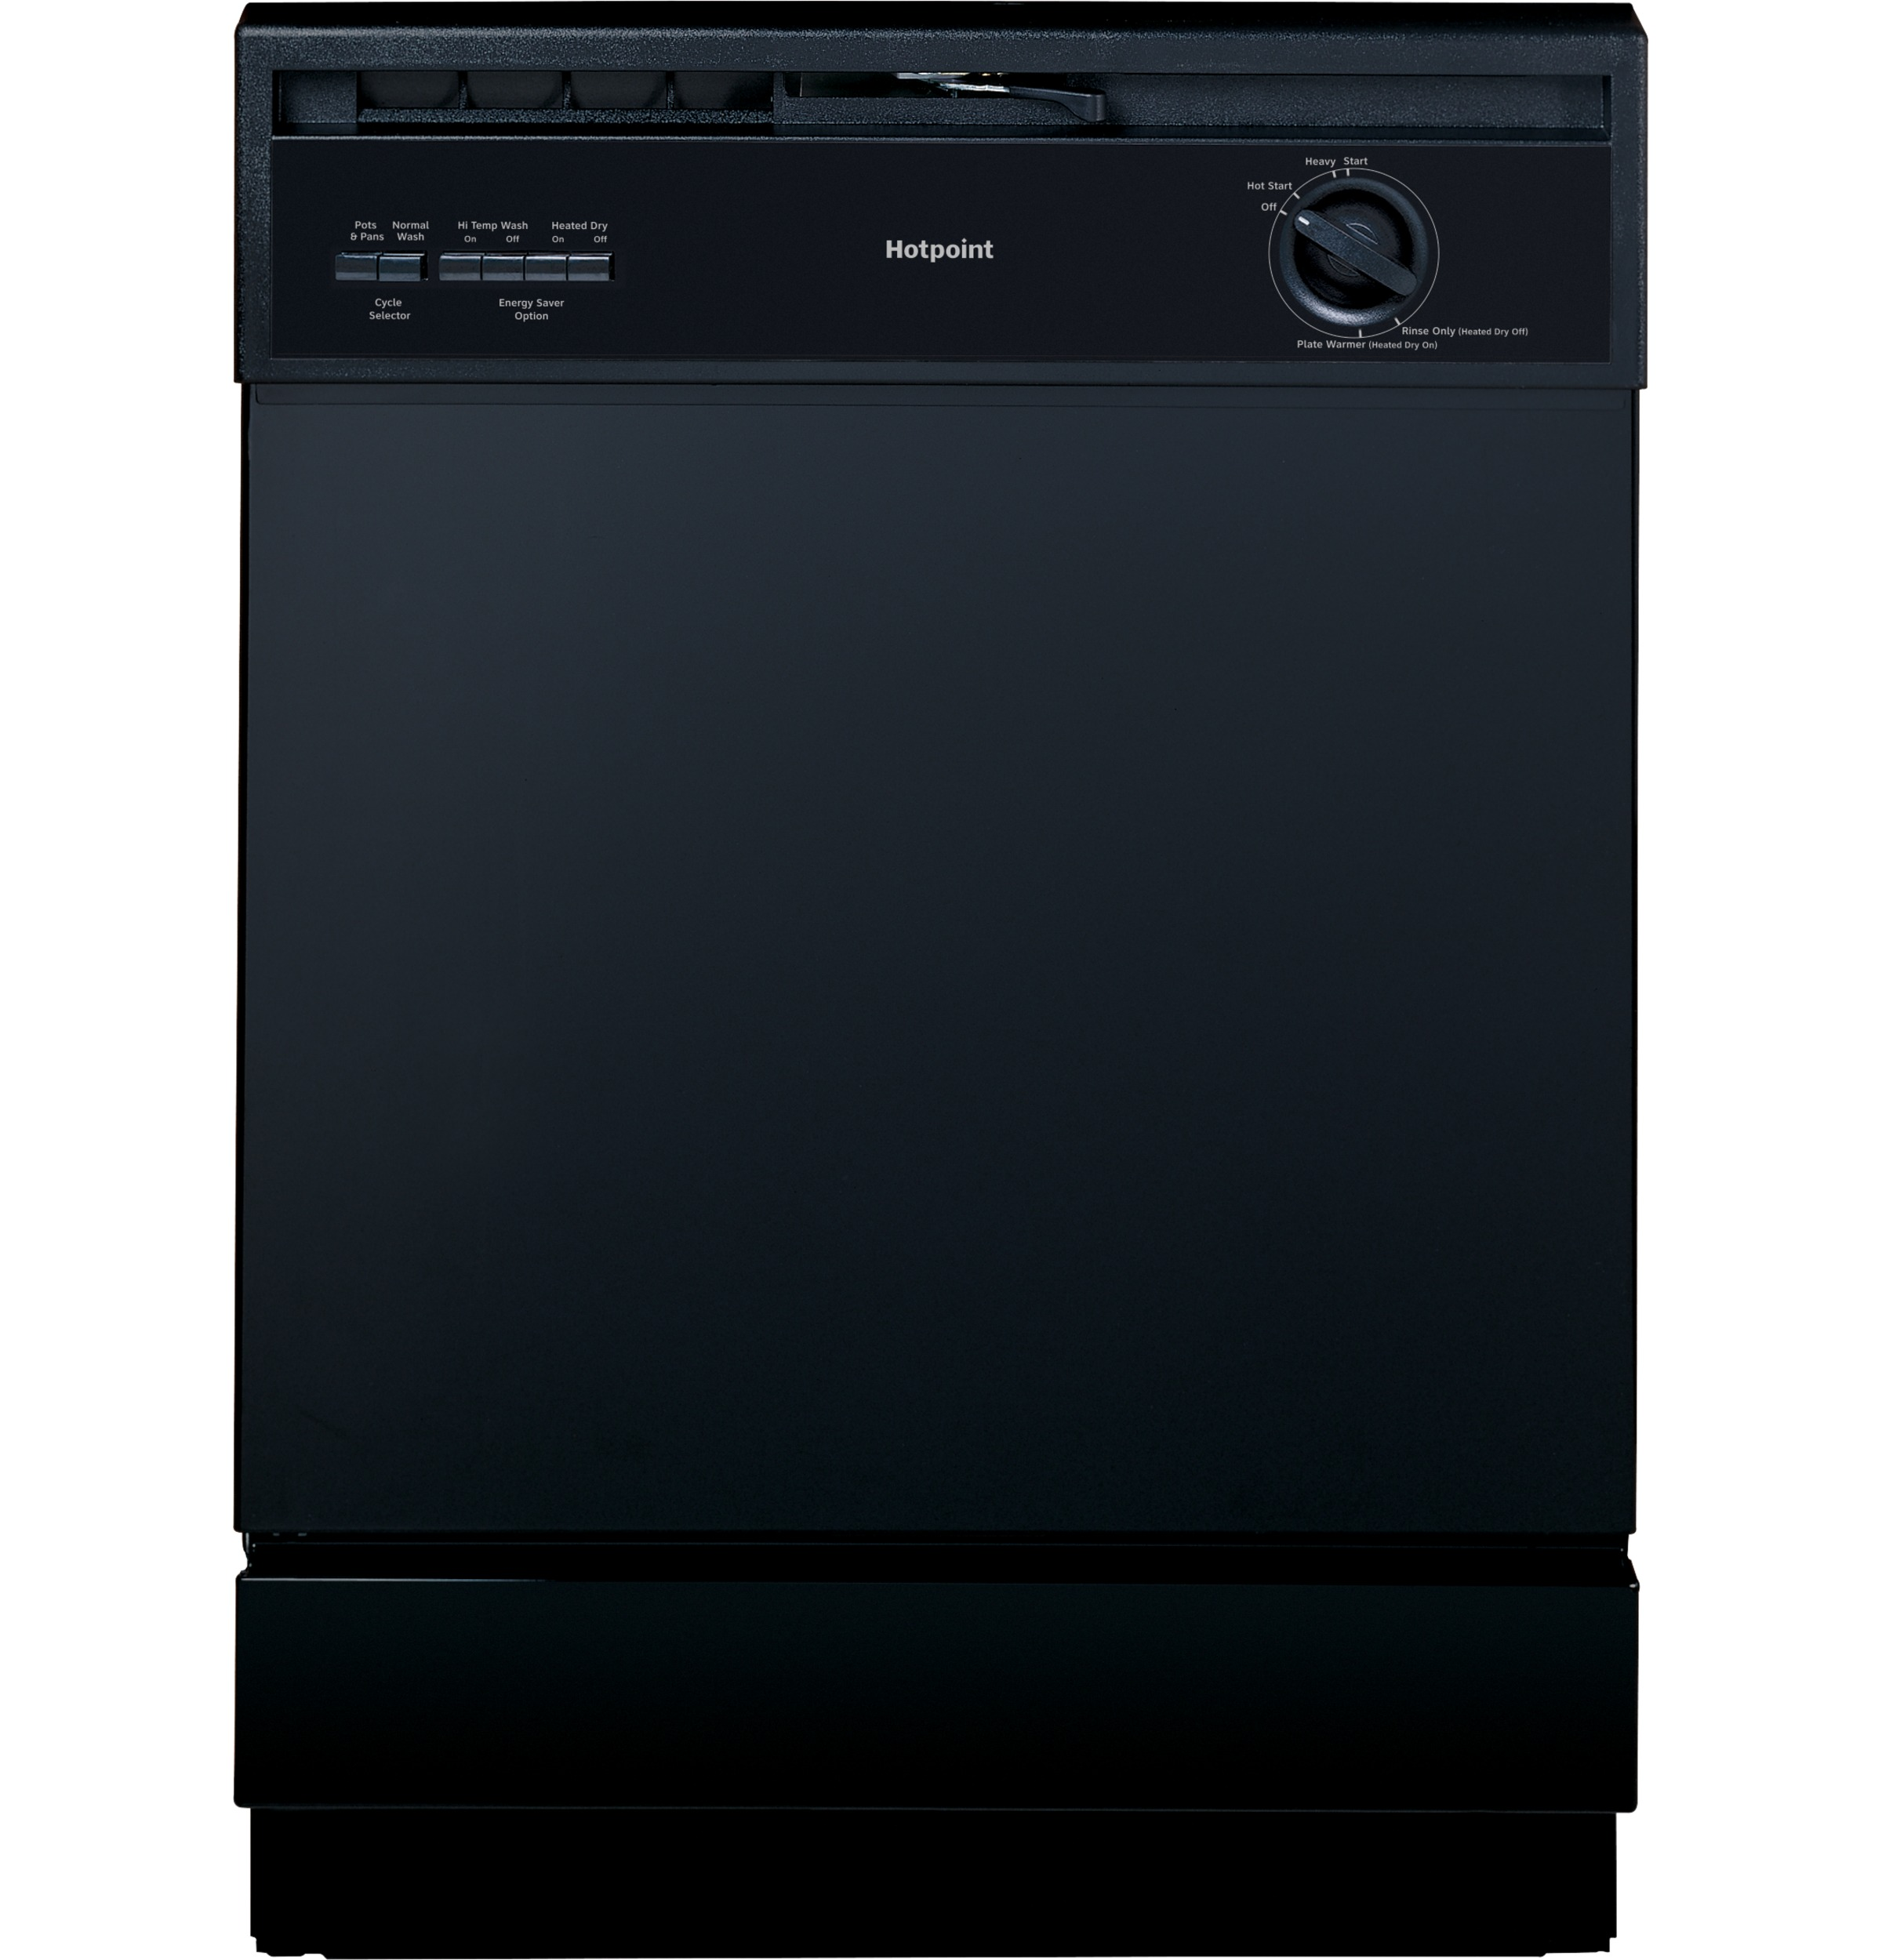 Cafe Hotpoint® Built-In Dishwasher